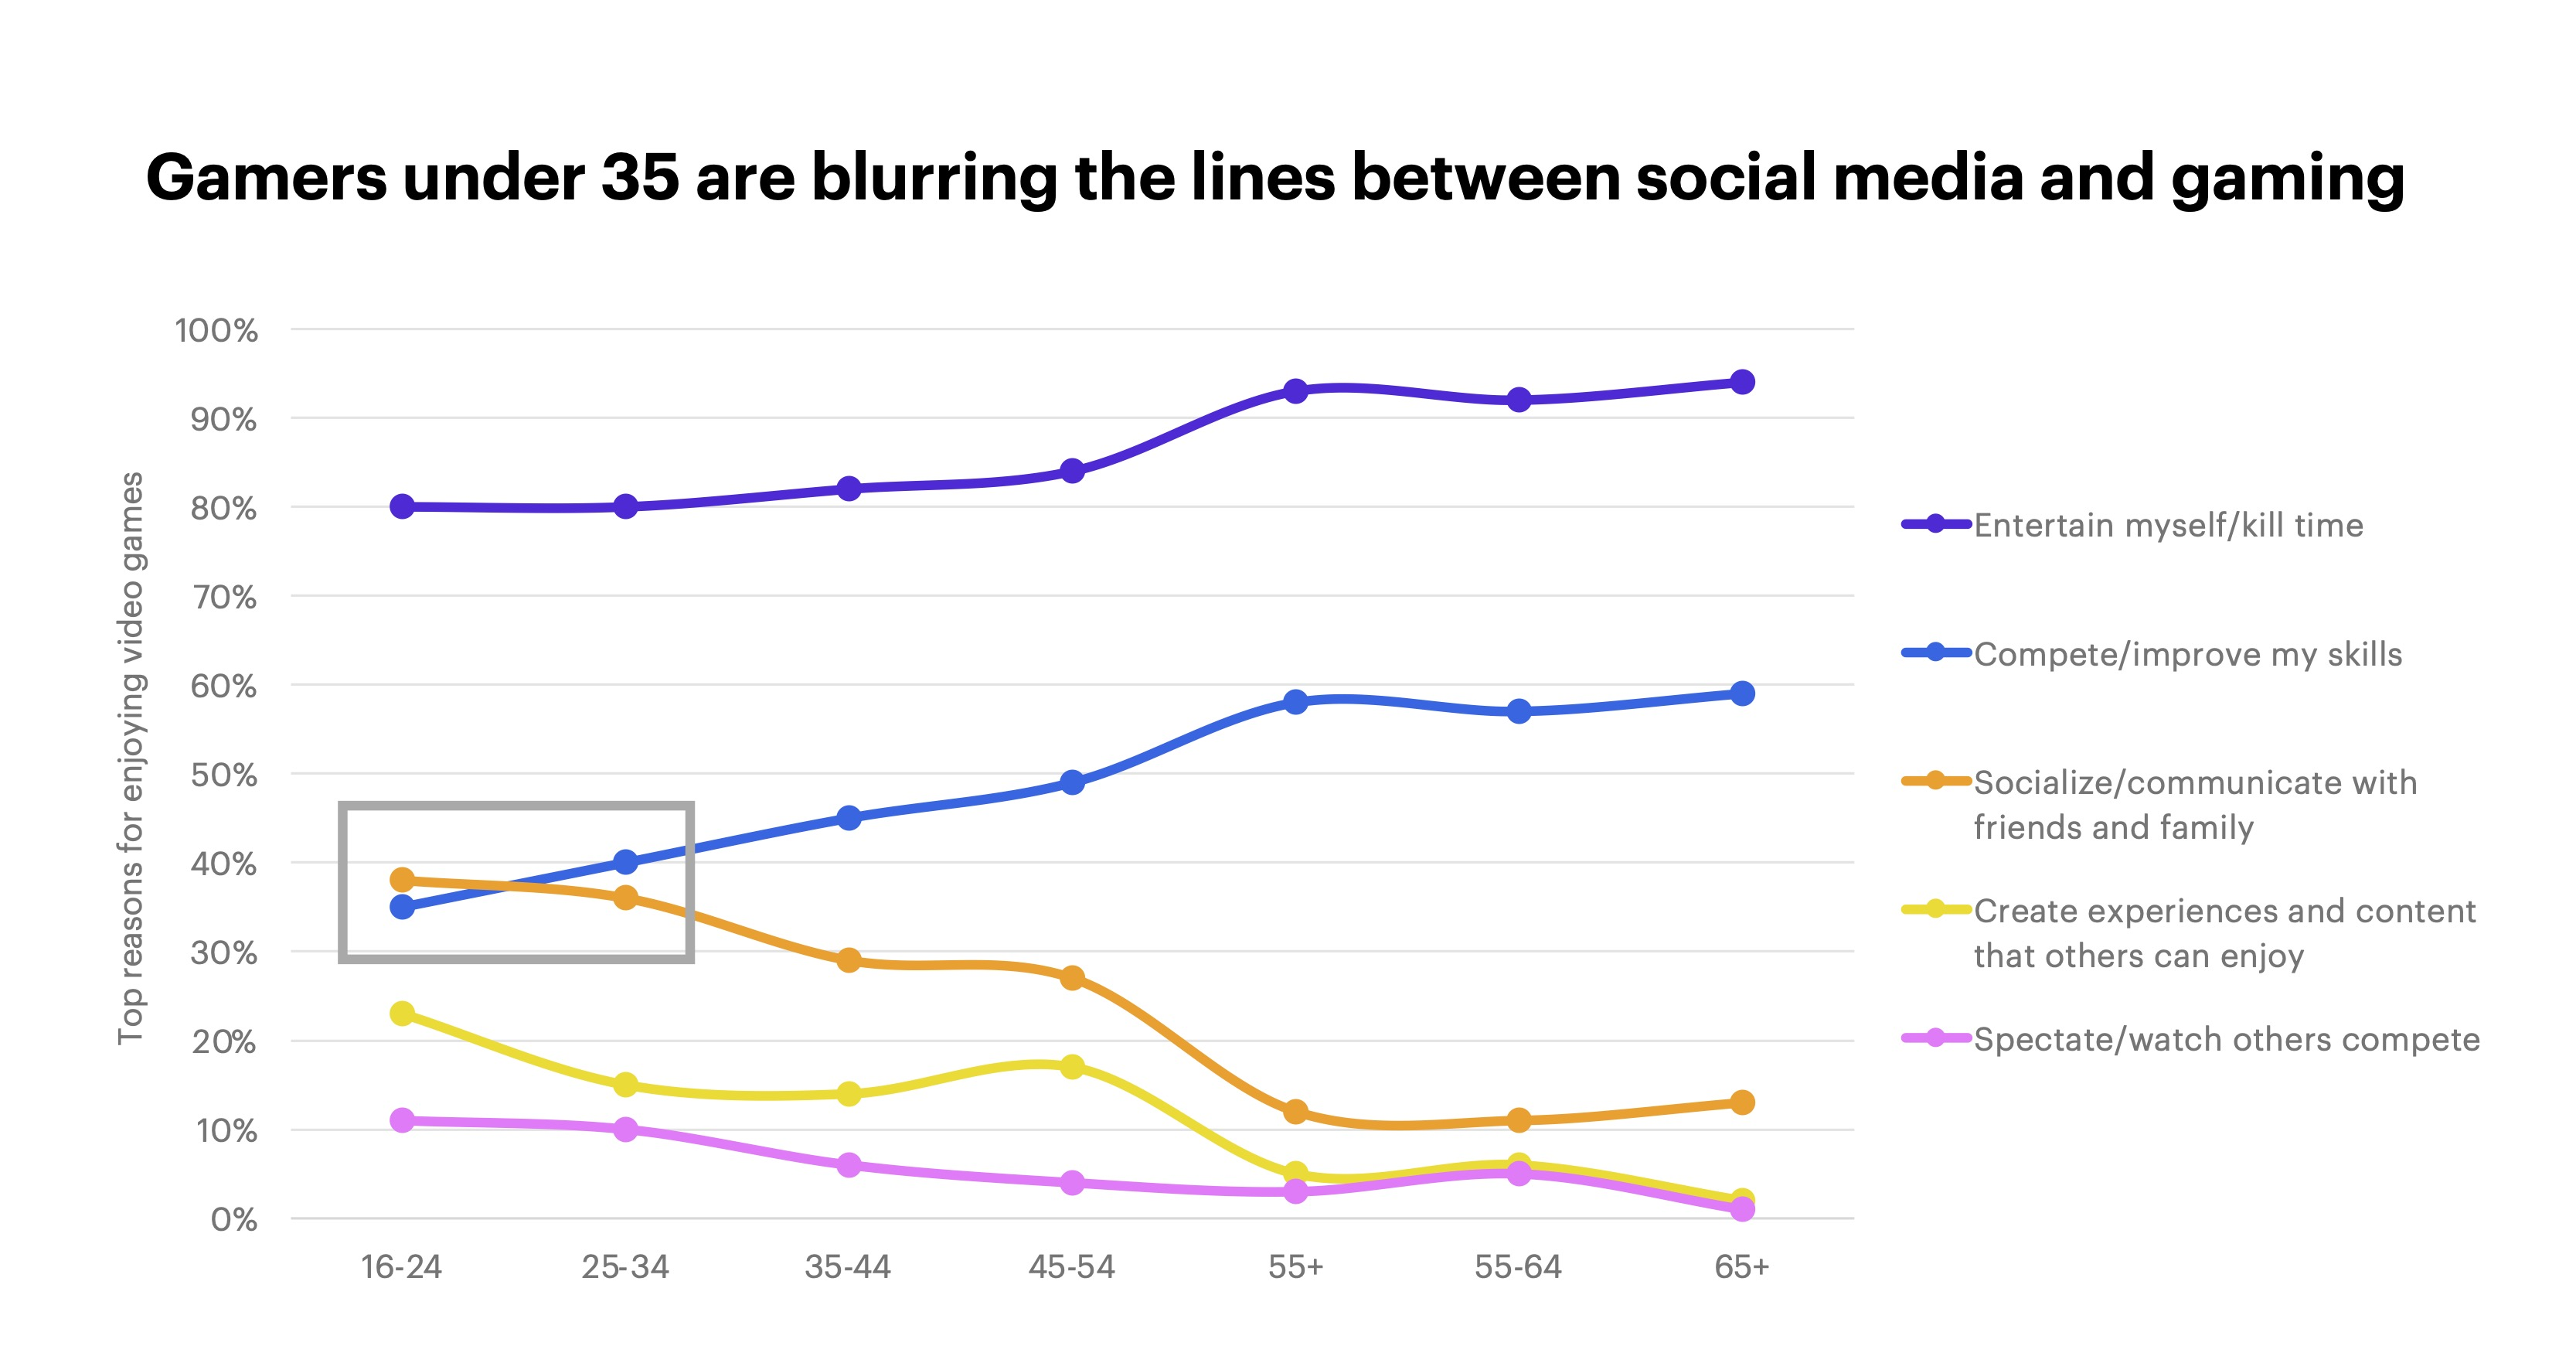 Gamers under 35 are blurring the lines between social media and gaming